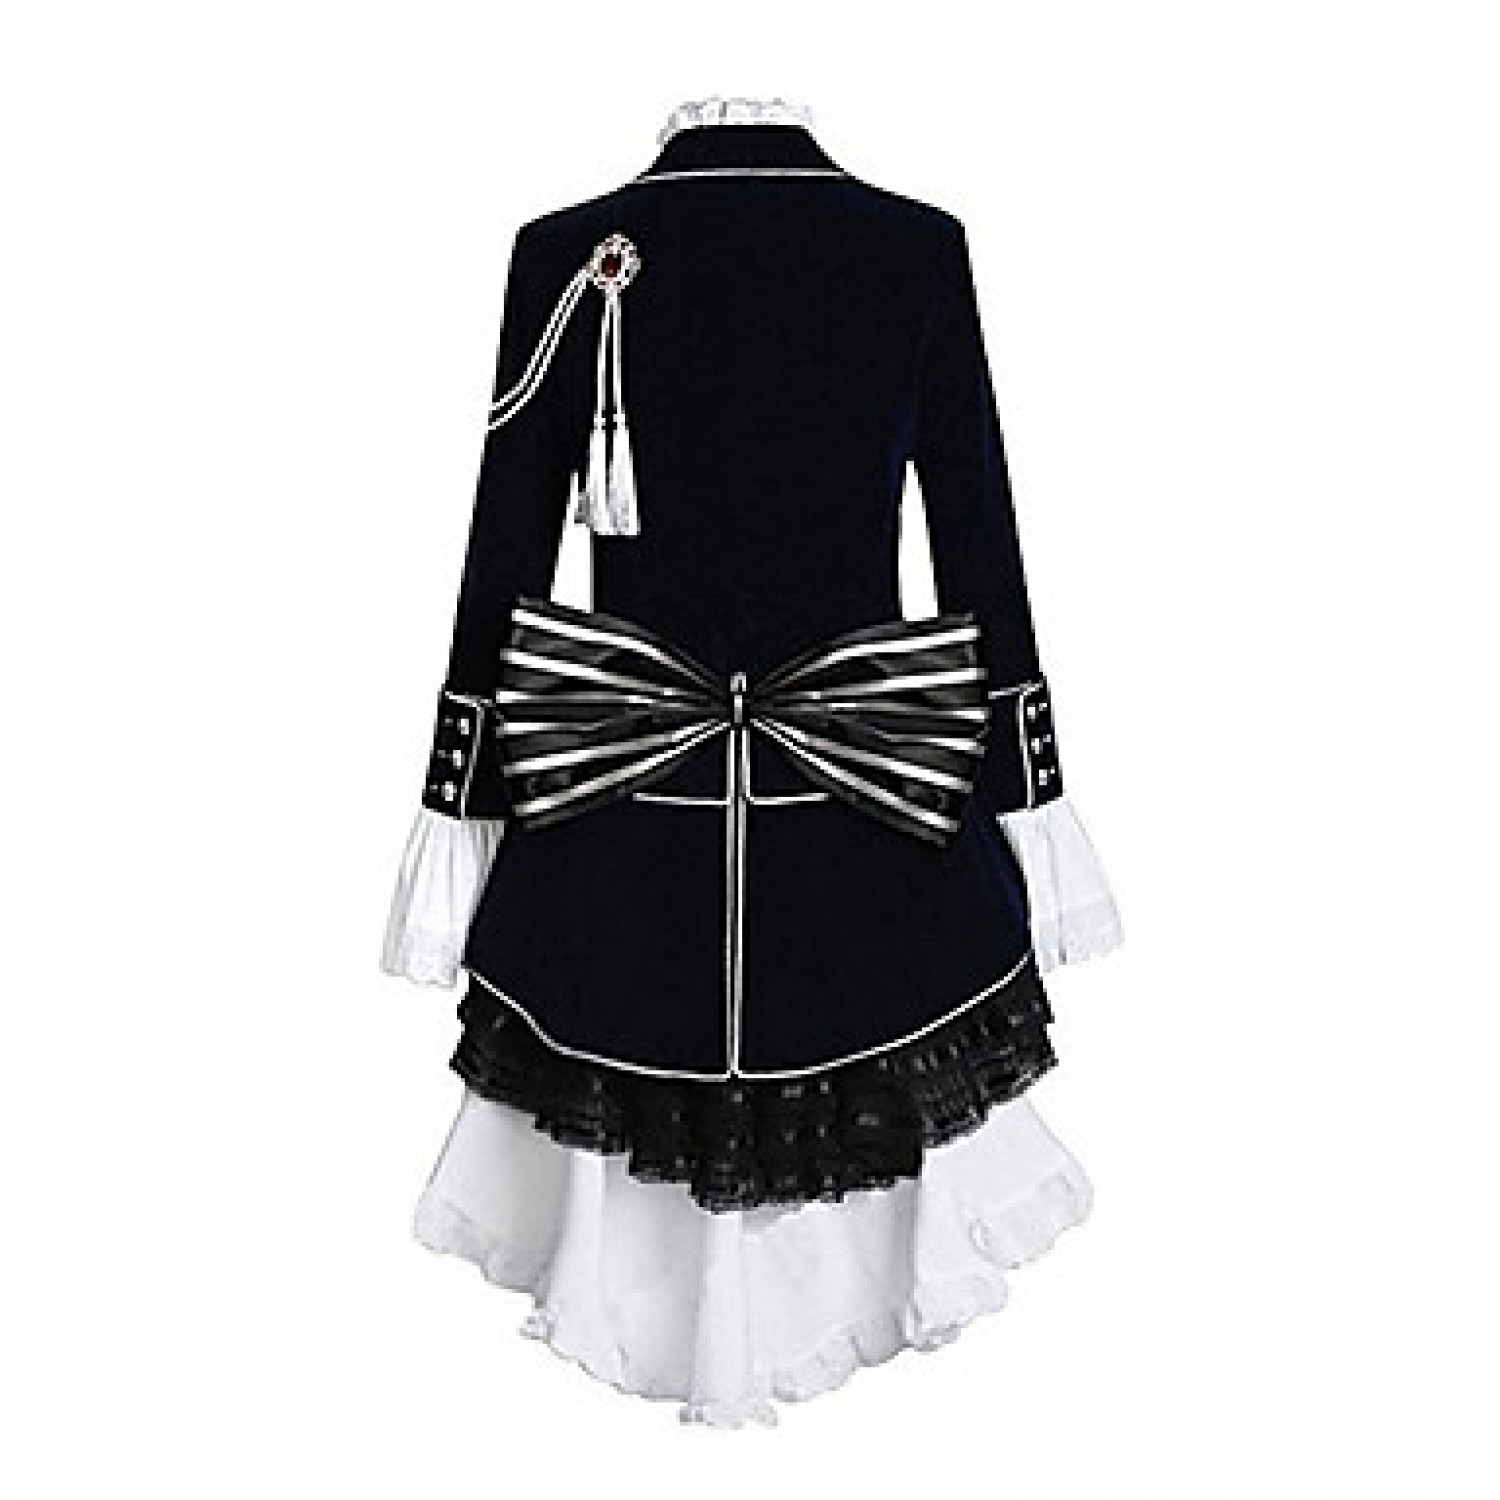 Black Butler Ciel Phantomhive Japan Anime Cosplay Costumes